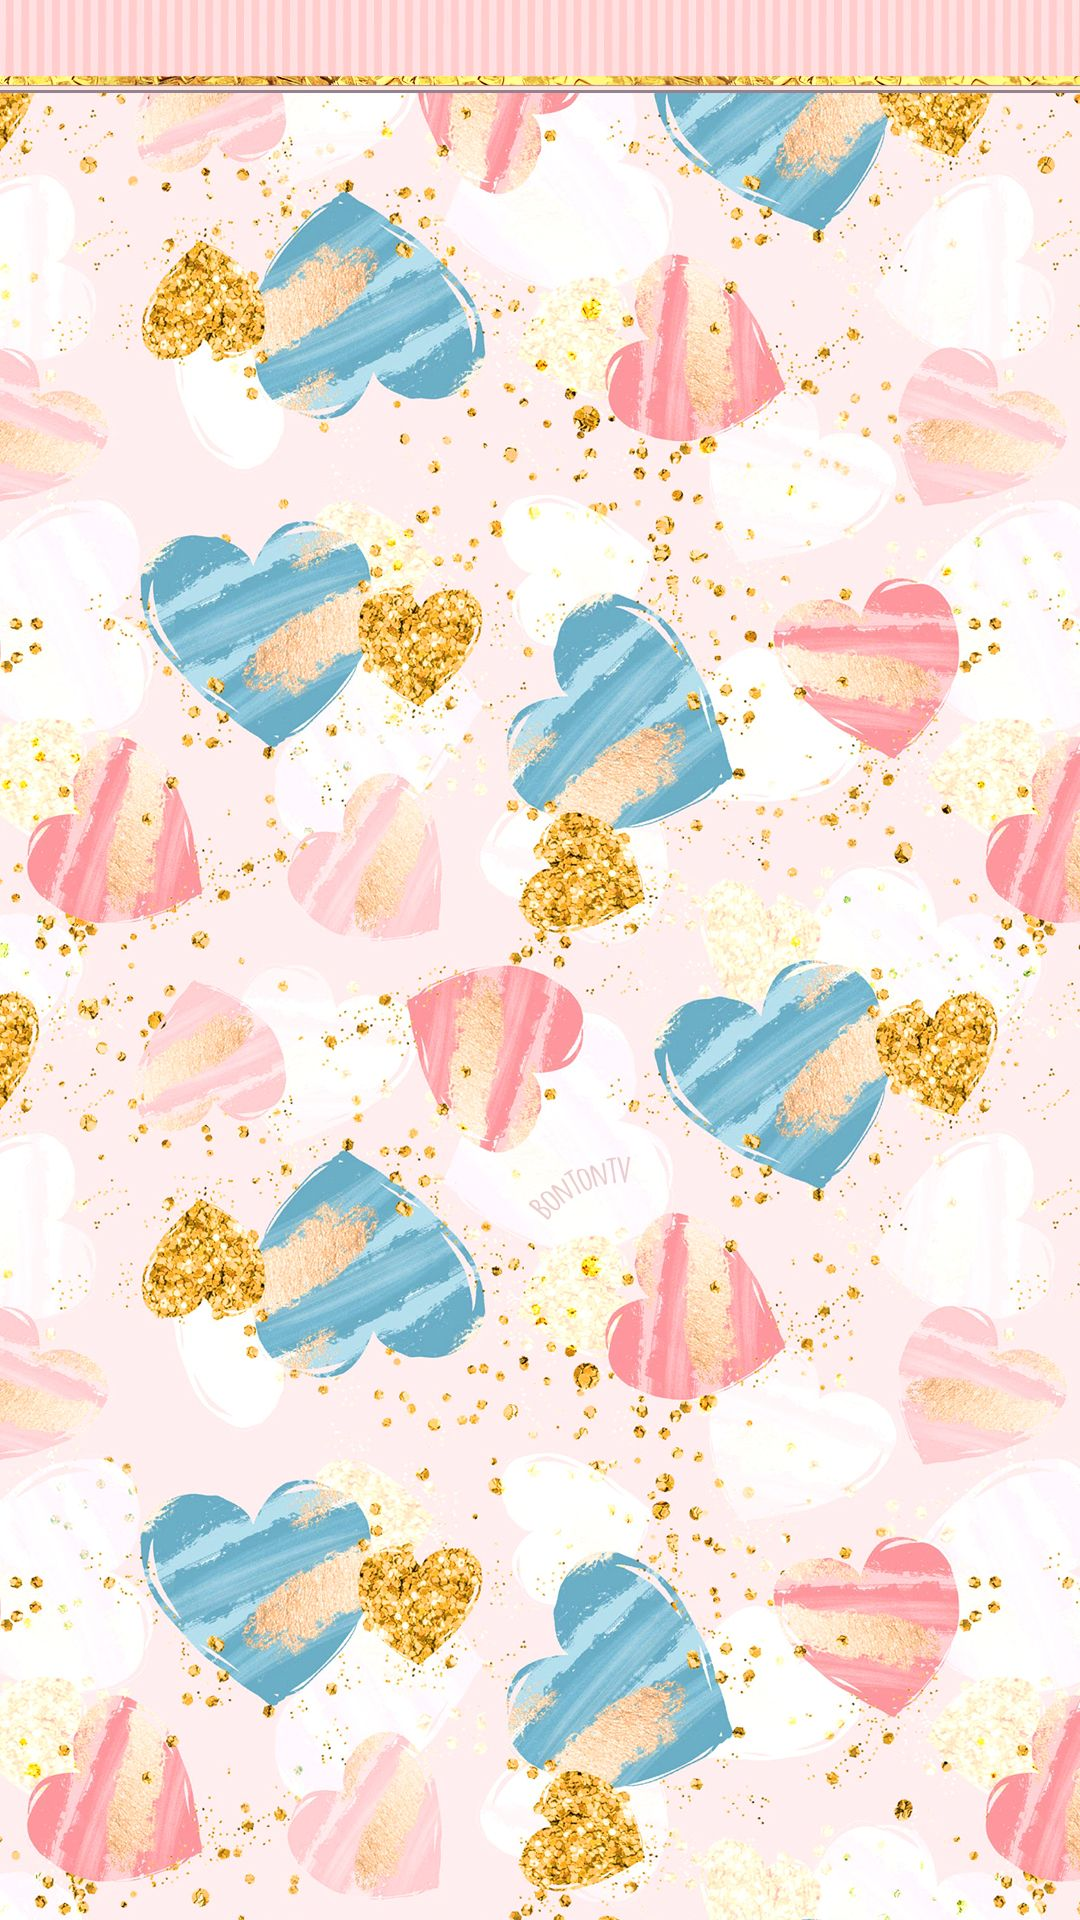 Phone Wallpapers Hd Cute Girly Pink Blue And Gold Hearts By Bonton Tv Free Blue And Gold Wallpaper Love Wallpaper Backgrounds Watercolor Pattern Background